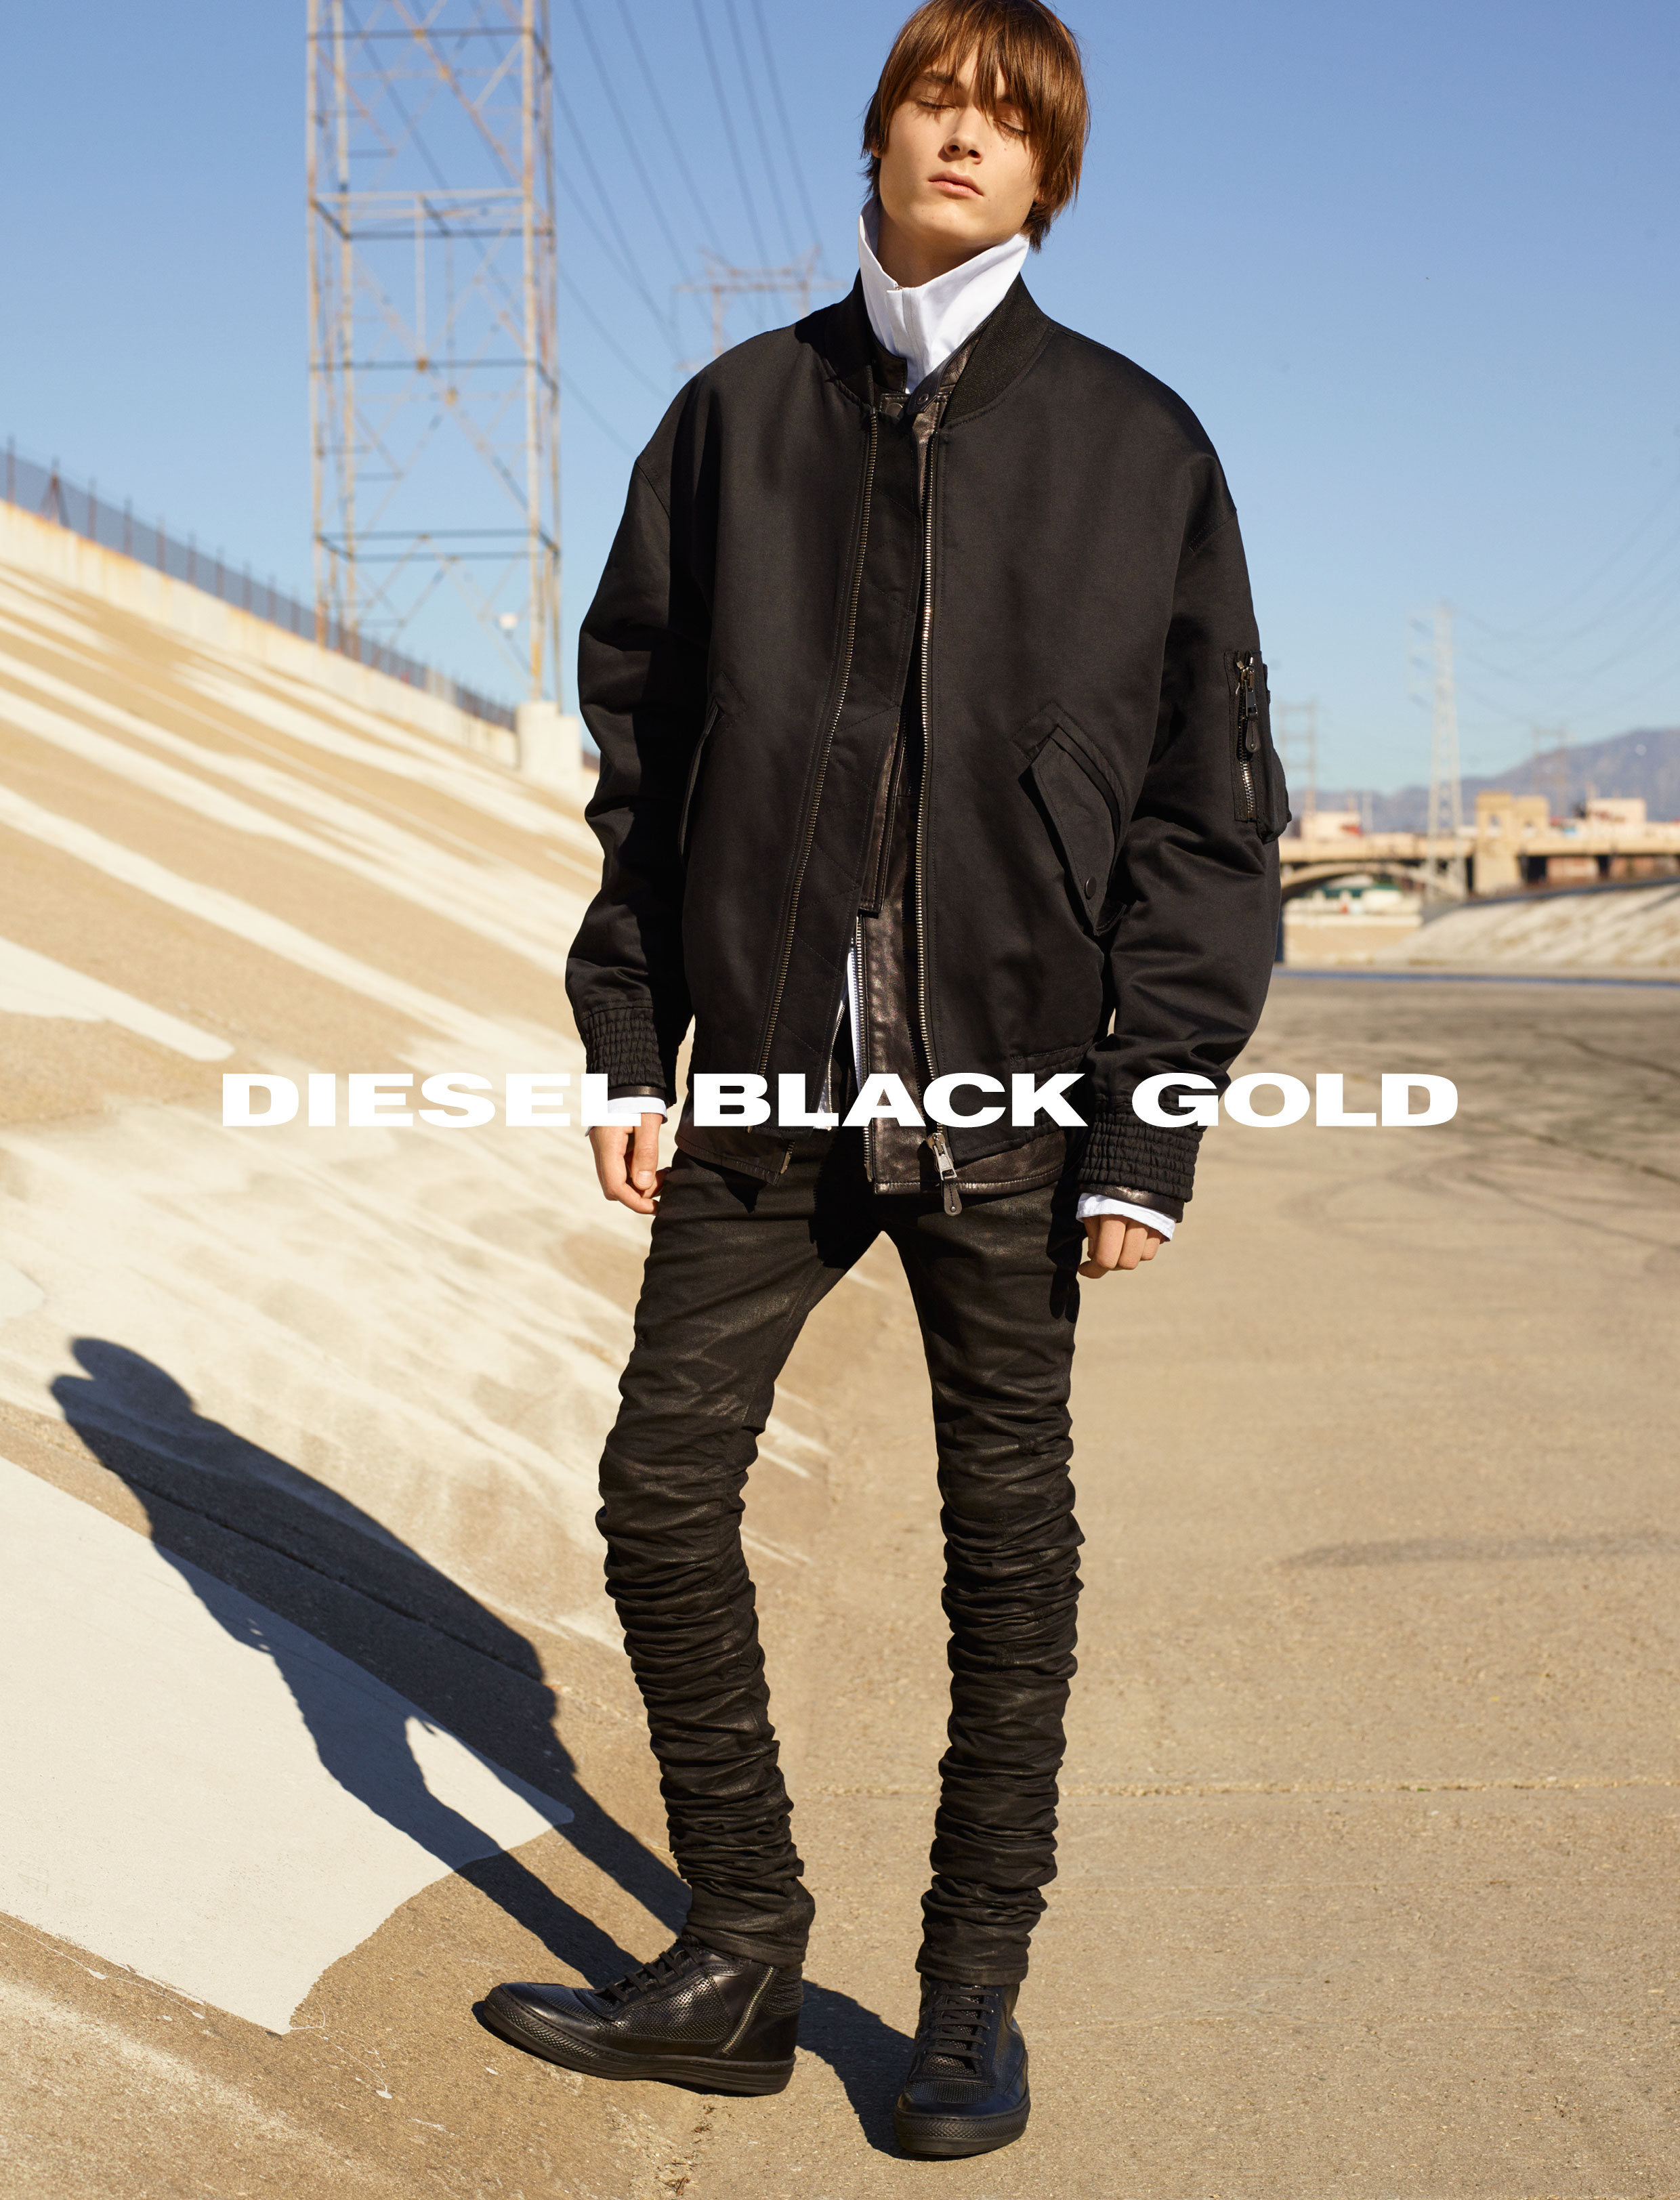 Diesel Black Gold SS16 Campaign